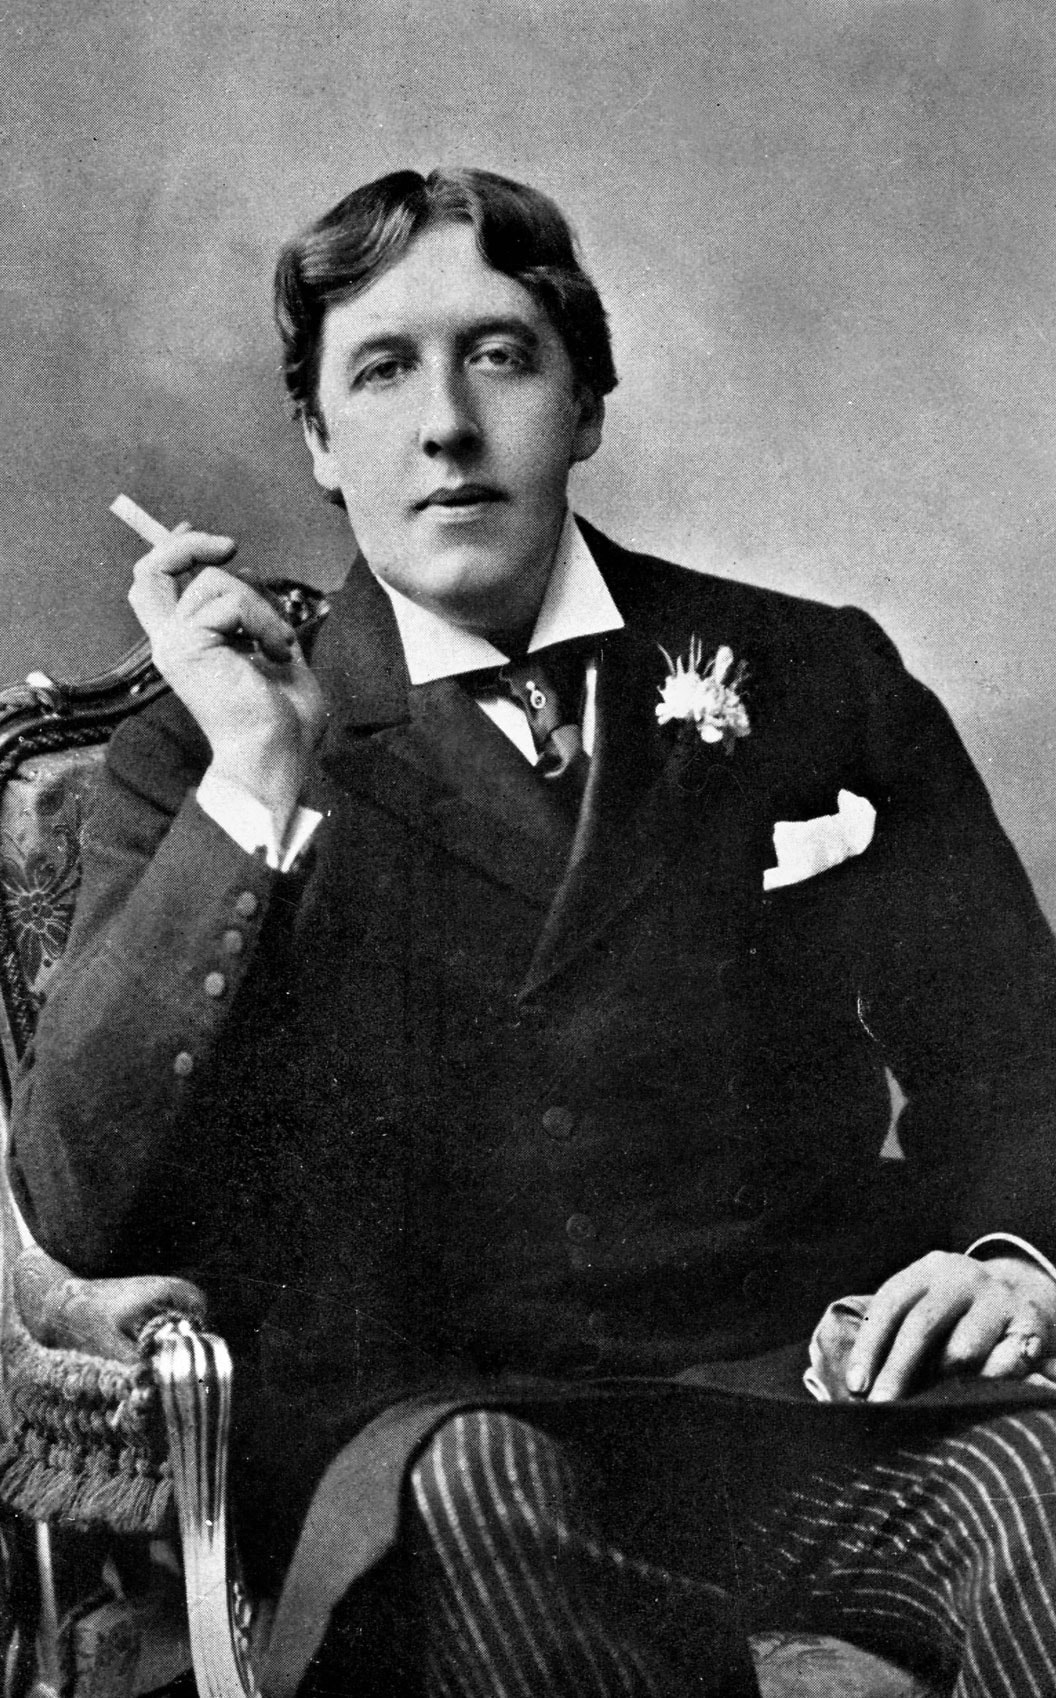 oscar wilde In a journal or later note by george cecil ives recording a meeting with wilde in 1900, oscar wilde: myths, miracles and imitations (cambridge university press, 1996), john stokes prayer must never be answered: if it is, it ceases to be prayer and becomes correspondence quoted by alvin redman in the epigrams of.